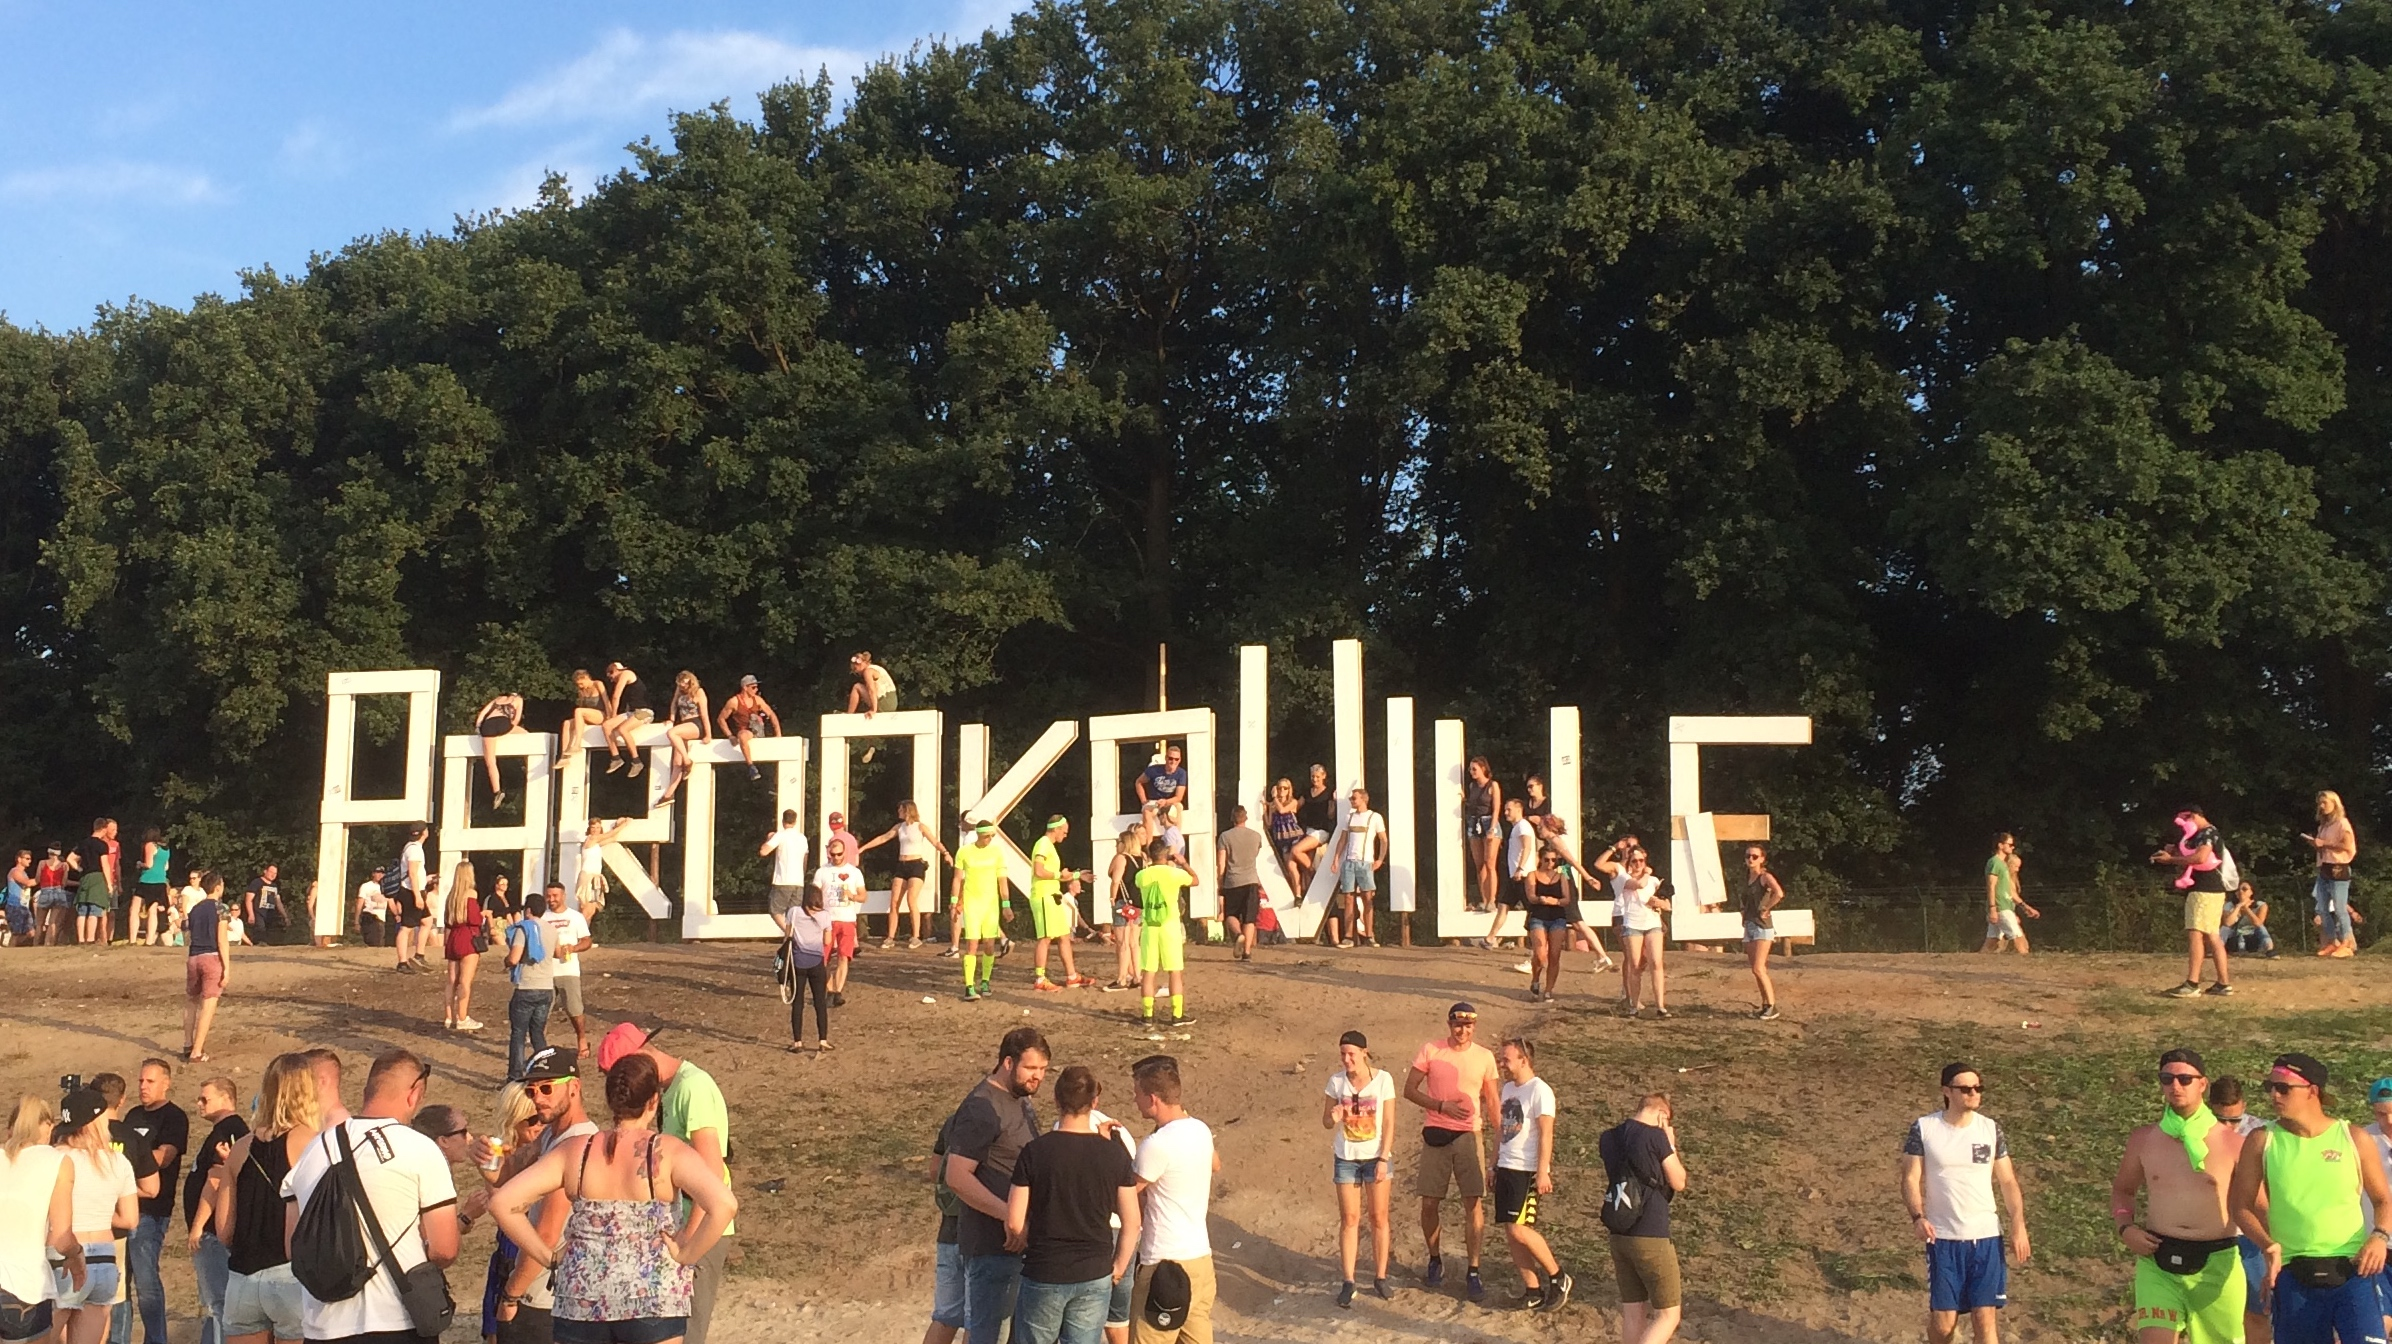 Welcome to Parookaville! Let madness, love and pure happiness rule again ♥